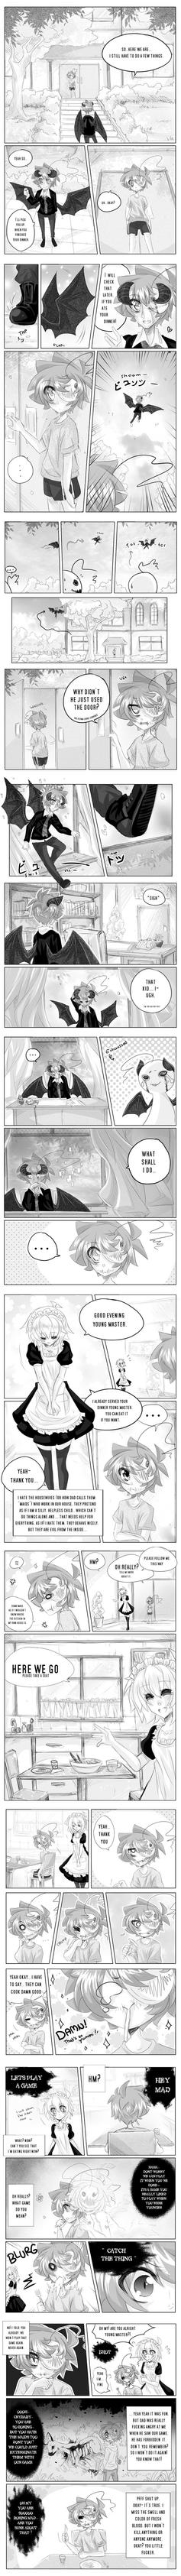 Crycest: Everlasting - Chapter 1 Page 30-39 by Nadi-Chan